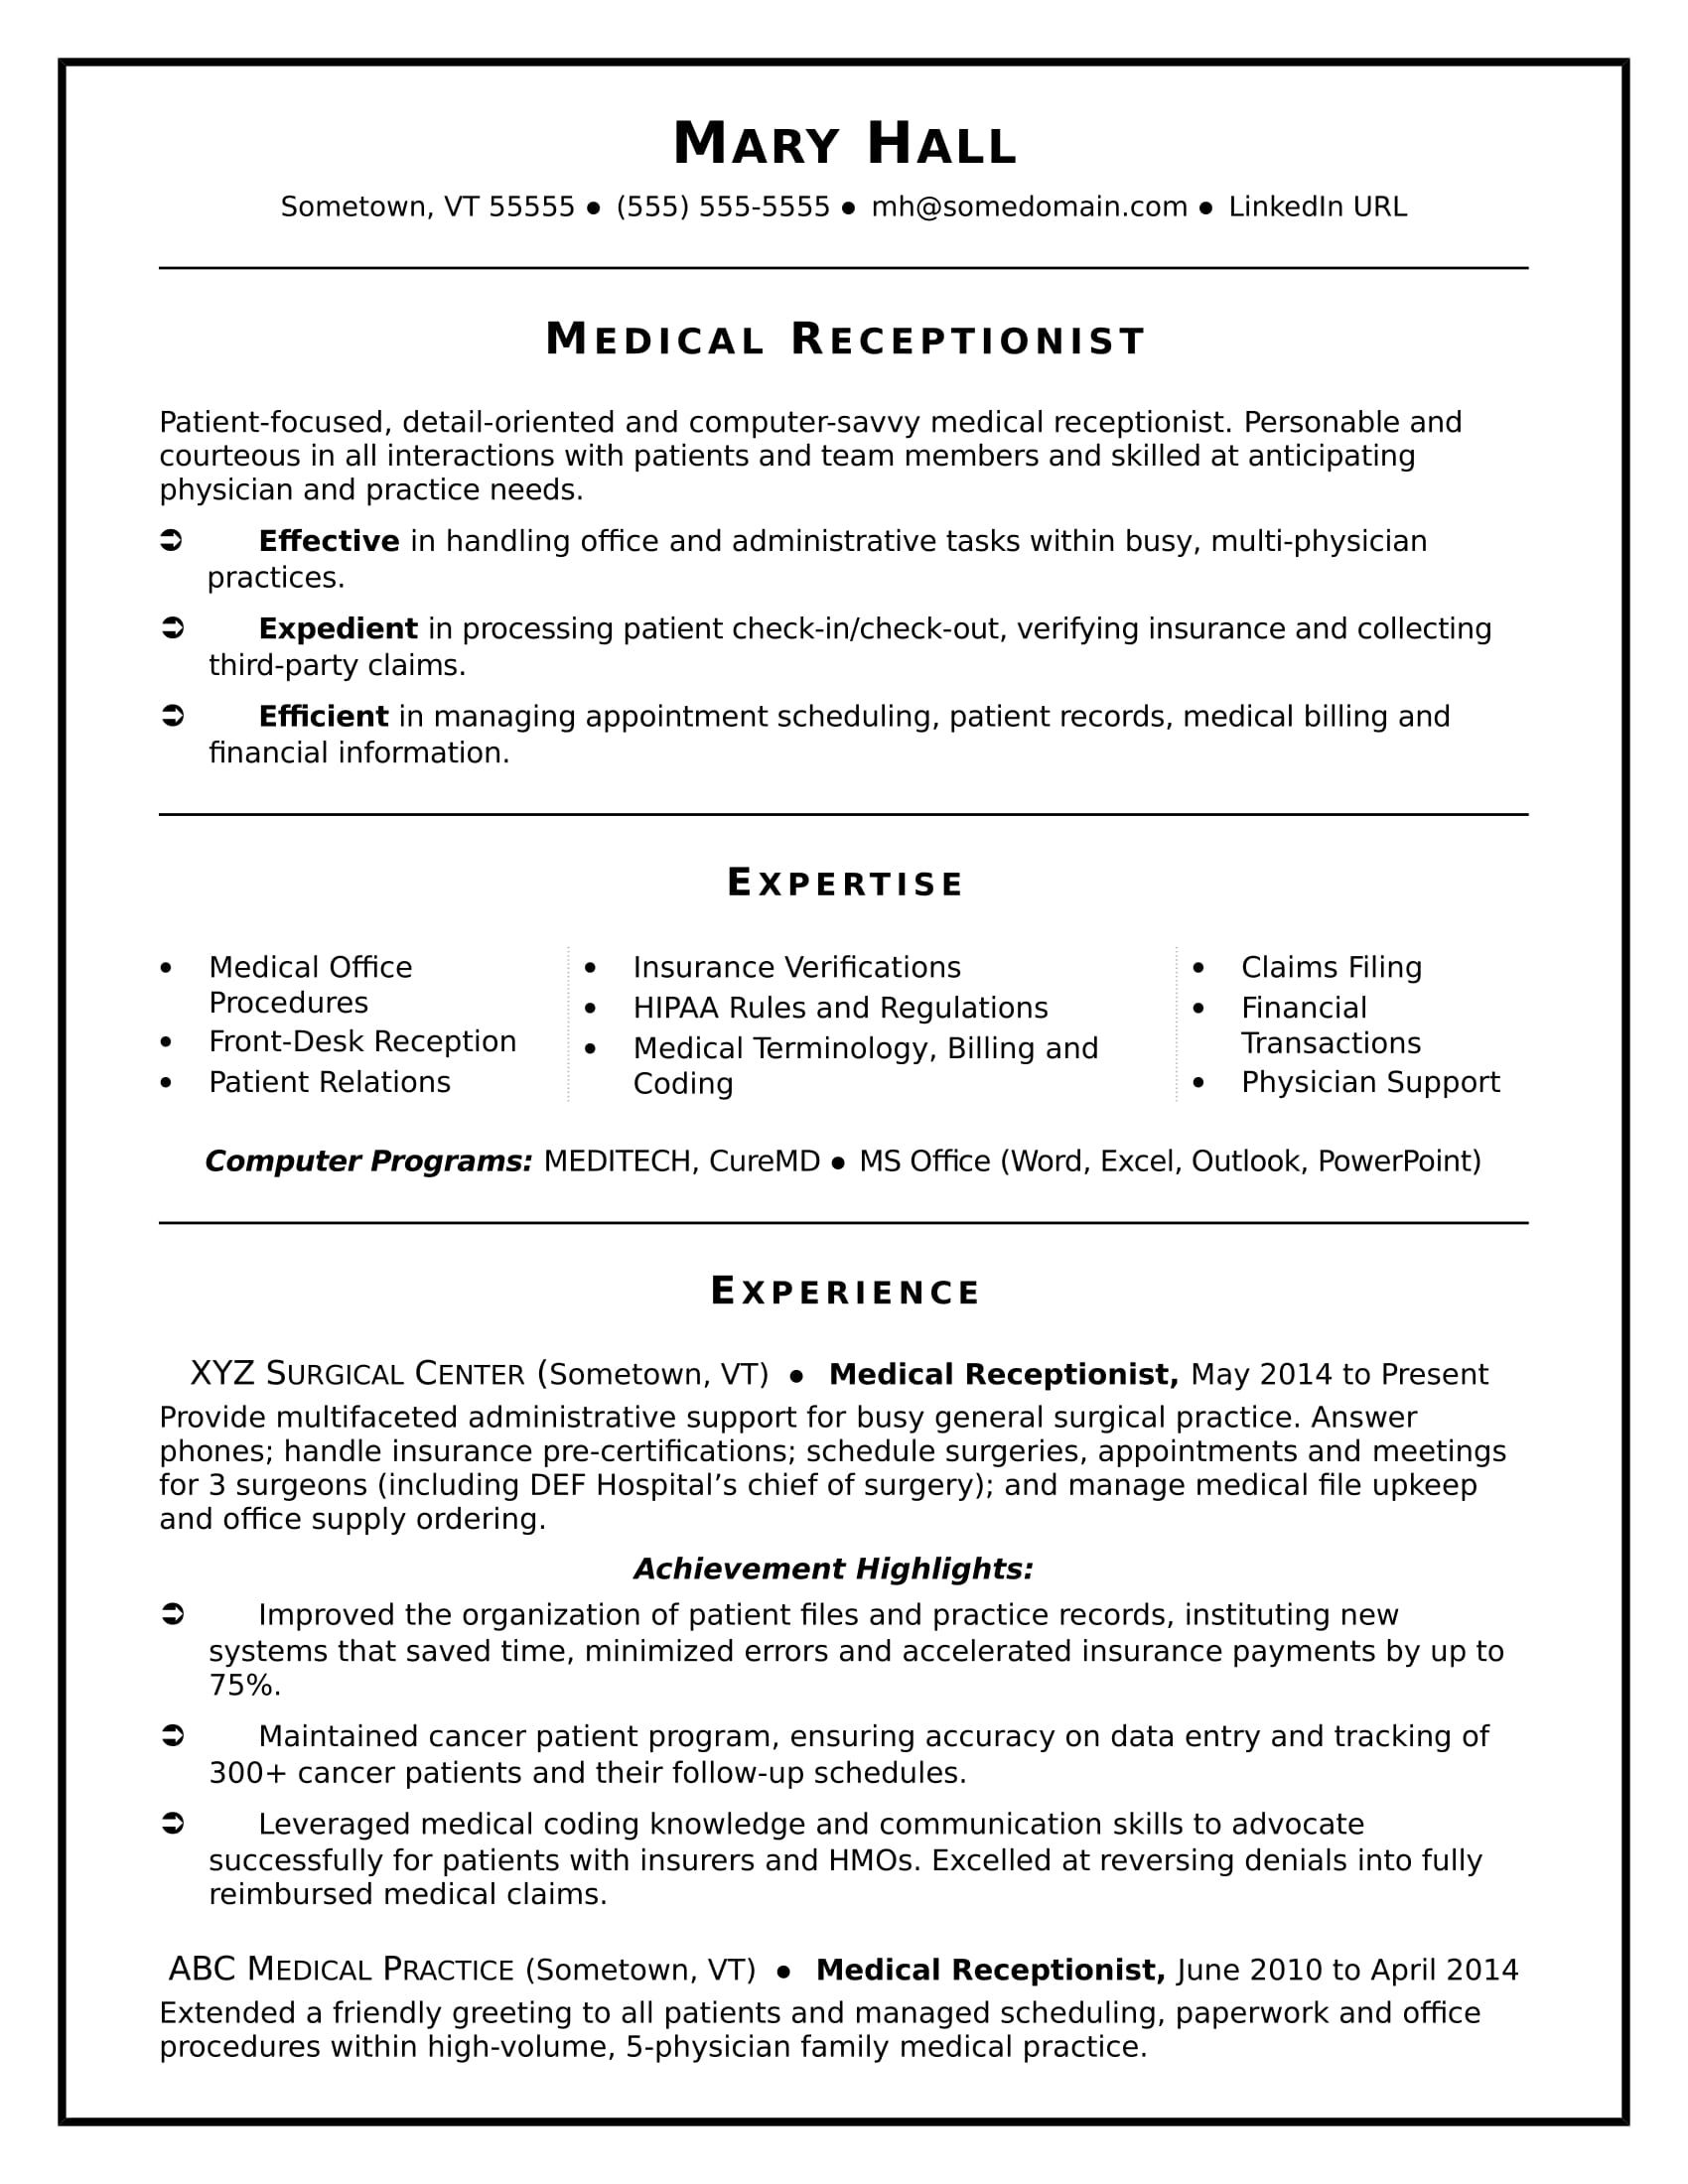 Resume For Medical Receptionist Medical Receptionist Resume Sample  Medical Receptionist And